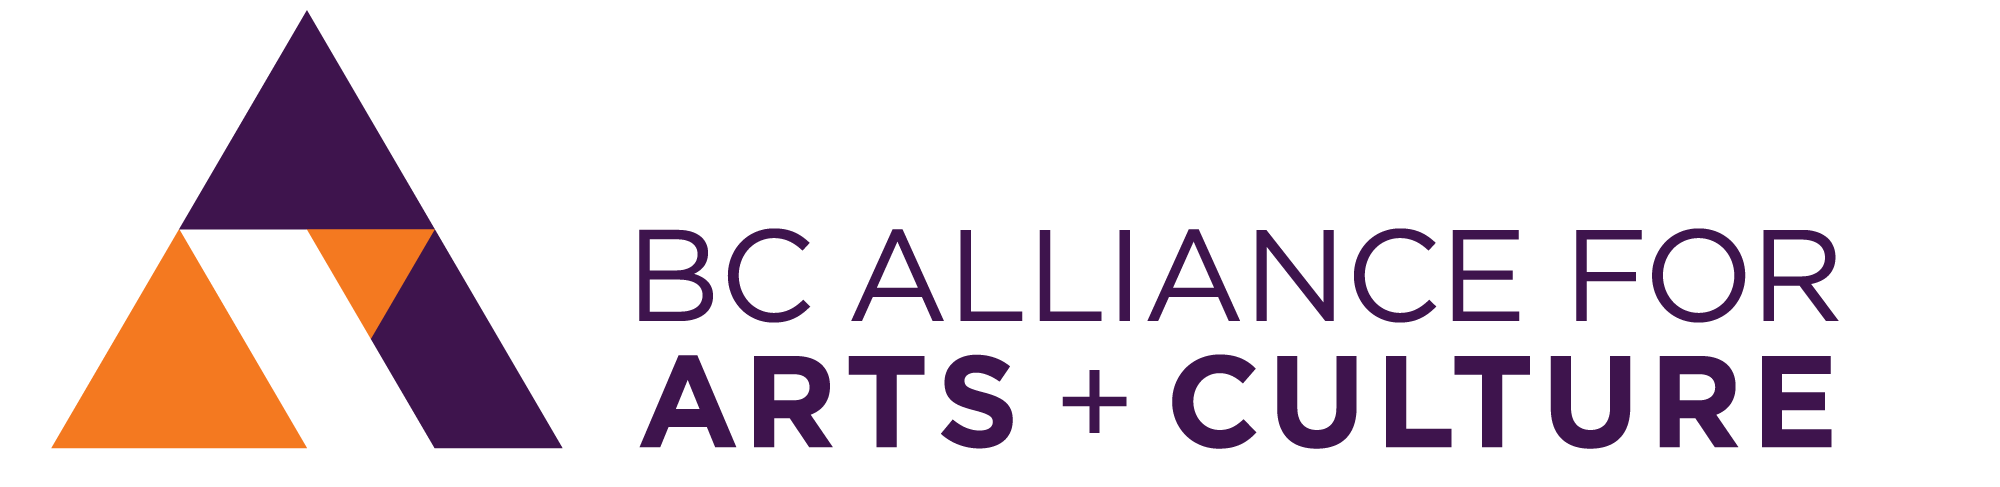 BC-Alliance-For-Arts-Logo-Strip.png